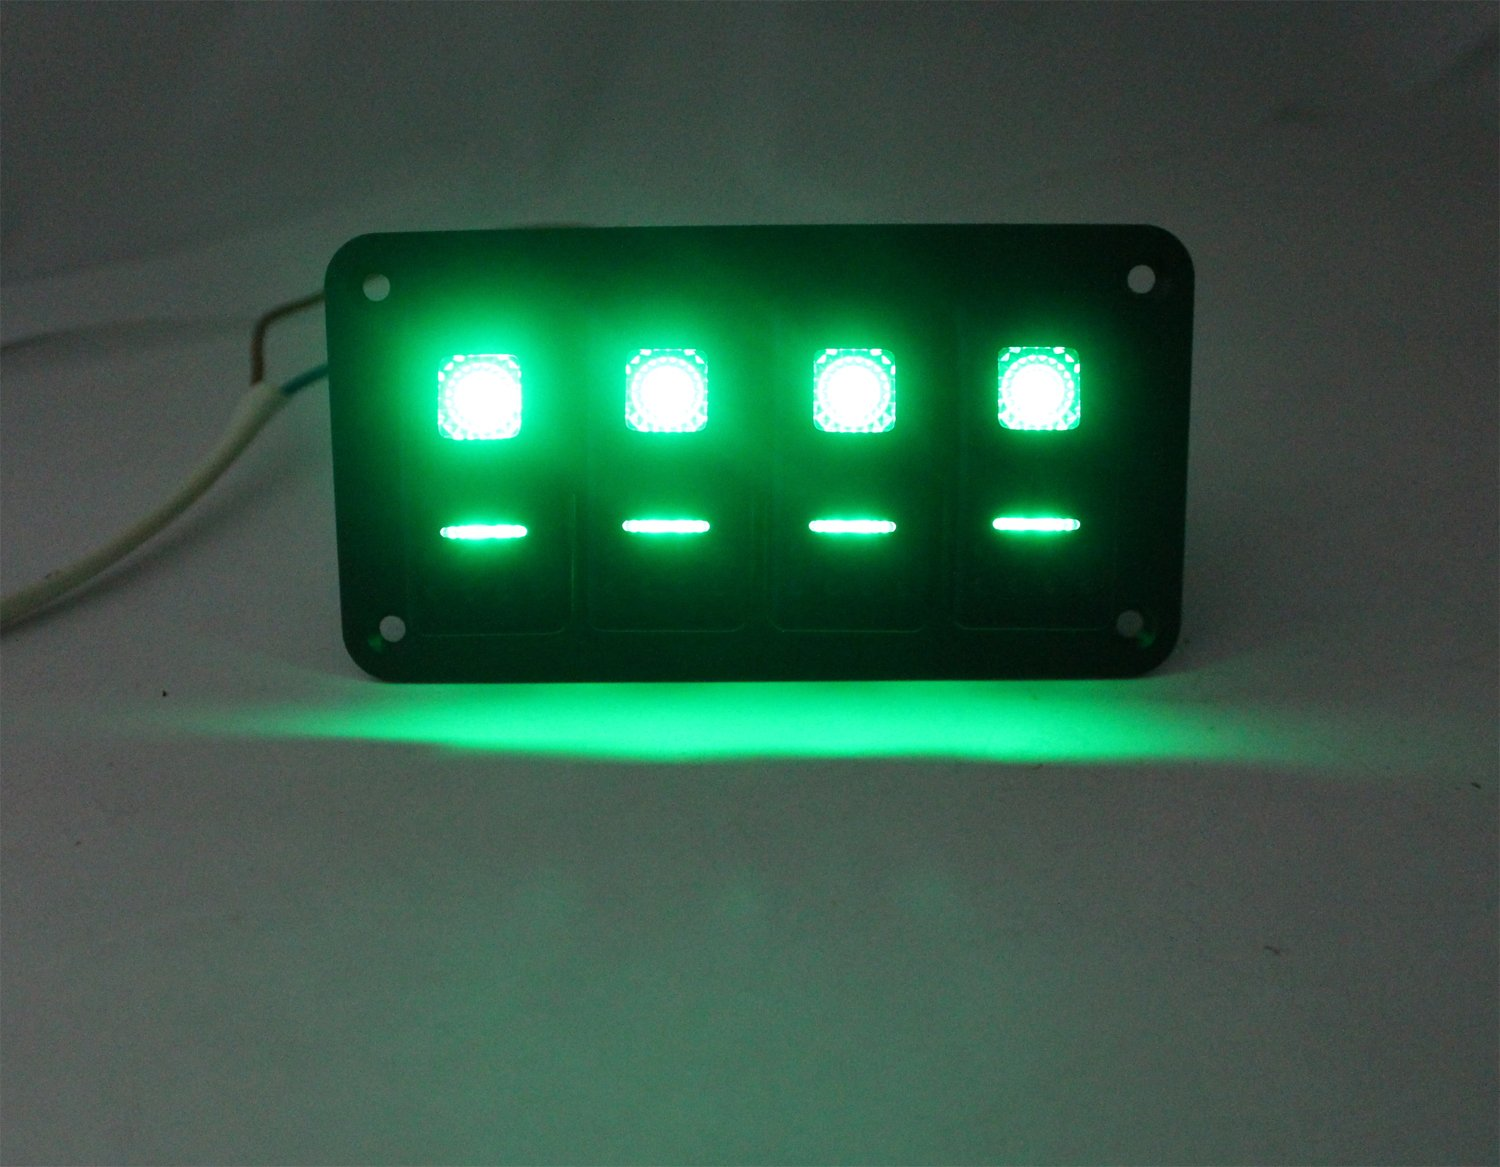 Fxc Rocker Switch Aluminum Panel 4 Gang Toggle Switches Carling 12 Volt Boat Marine Dash 5 Pin On Off 2 Led Backlit For Car Green Sports Outdoors